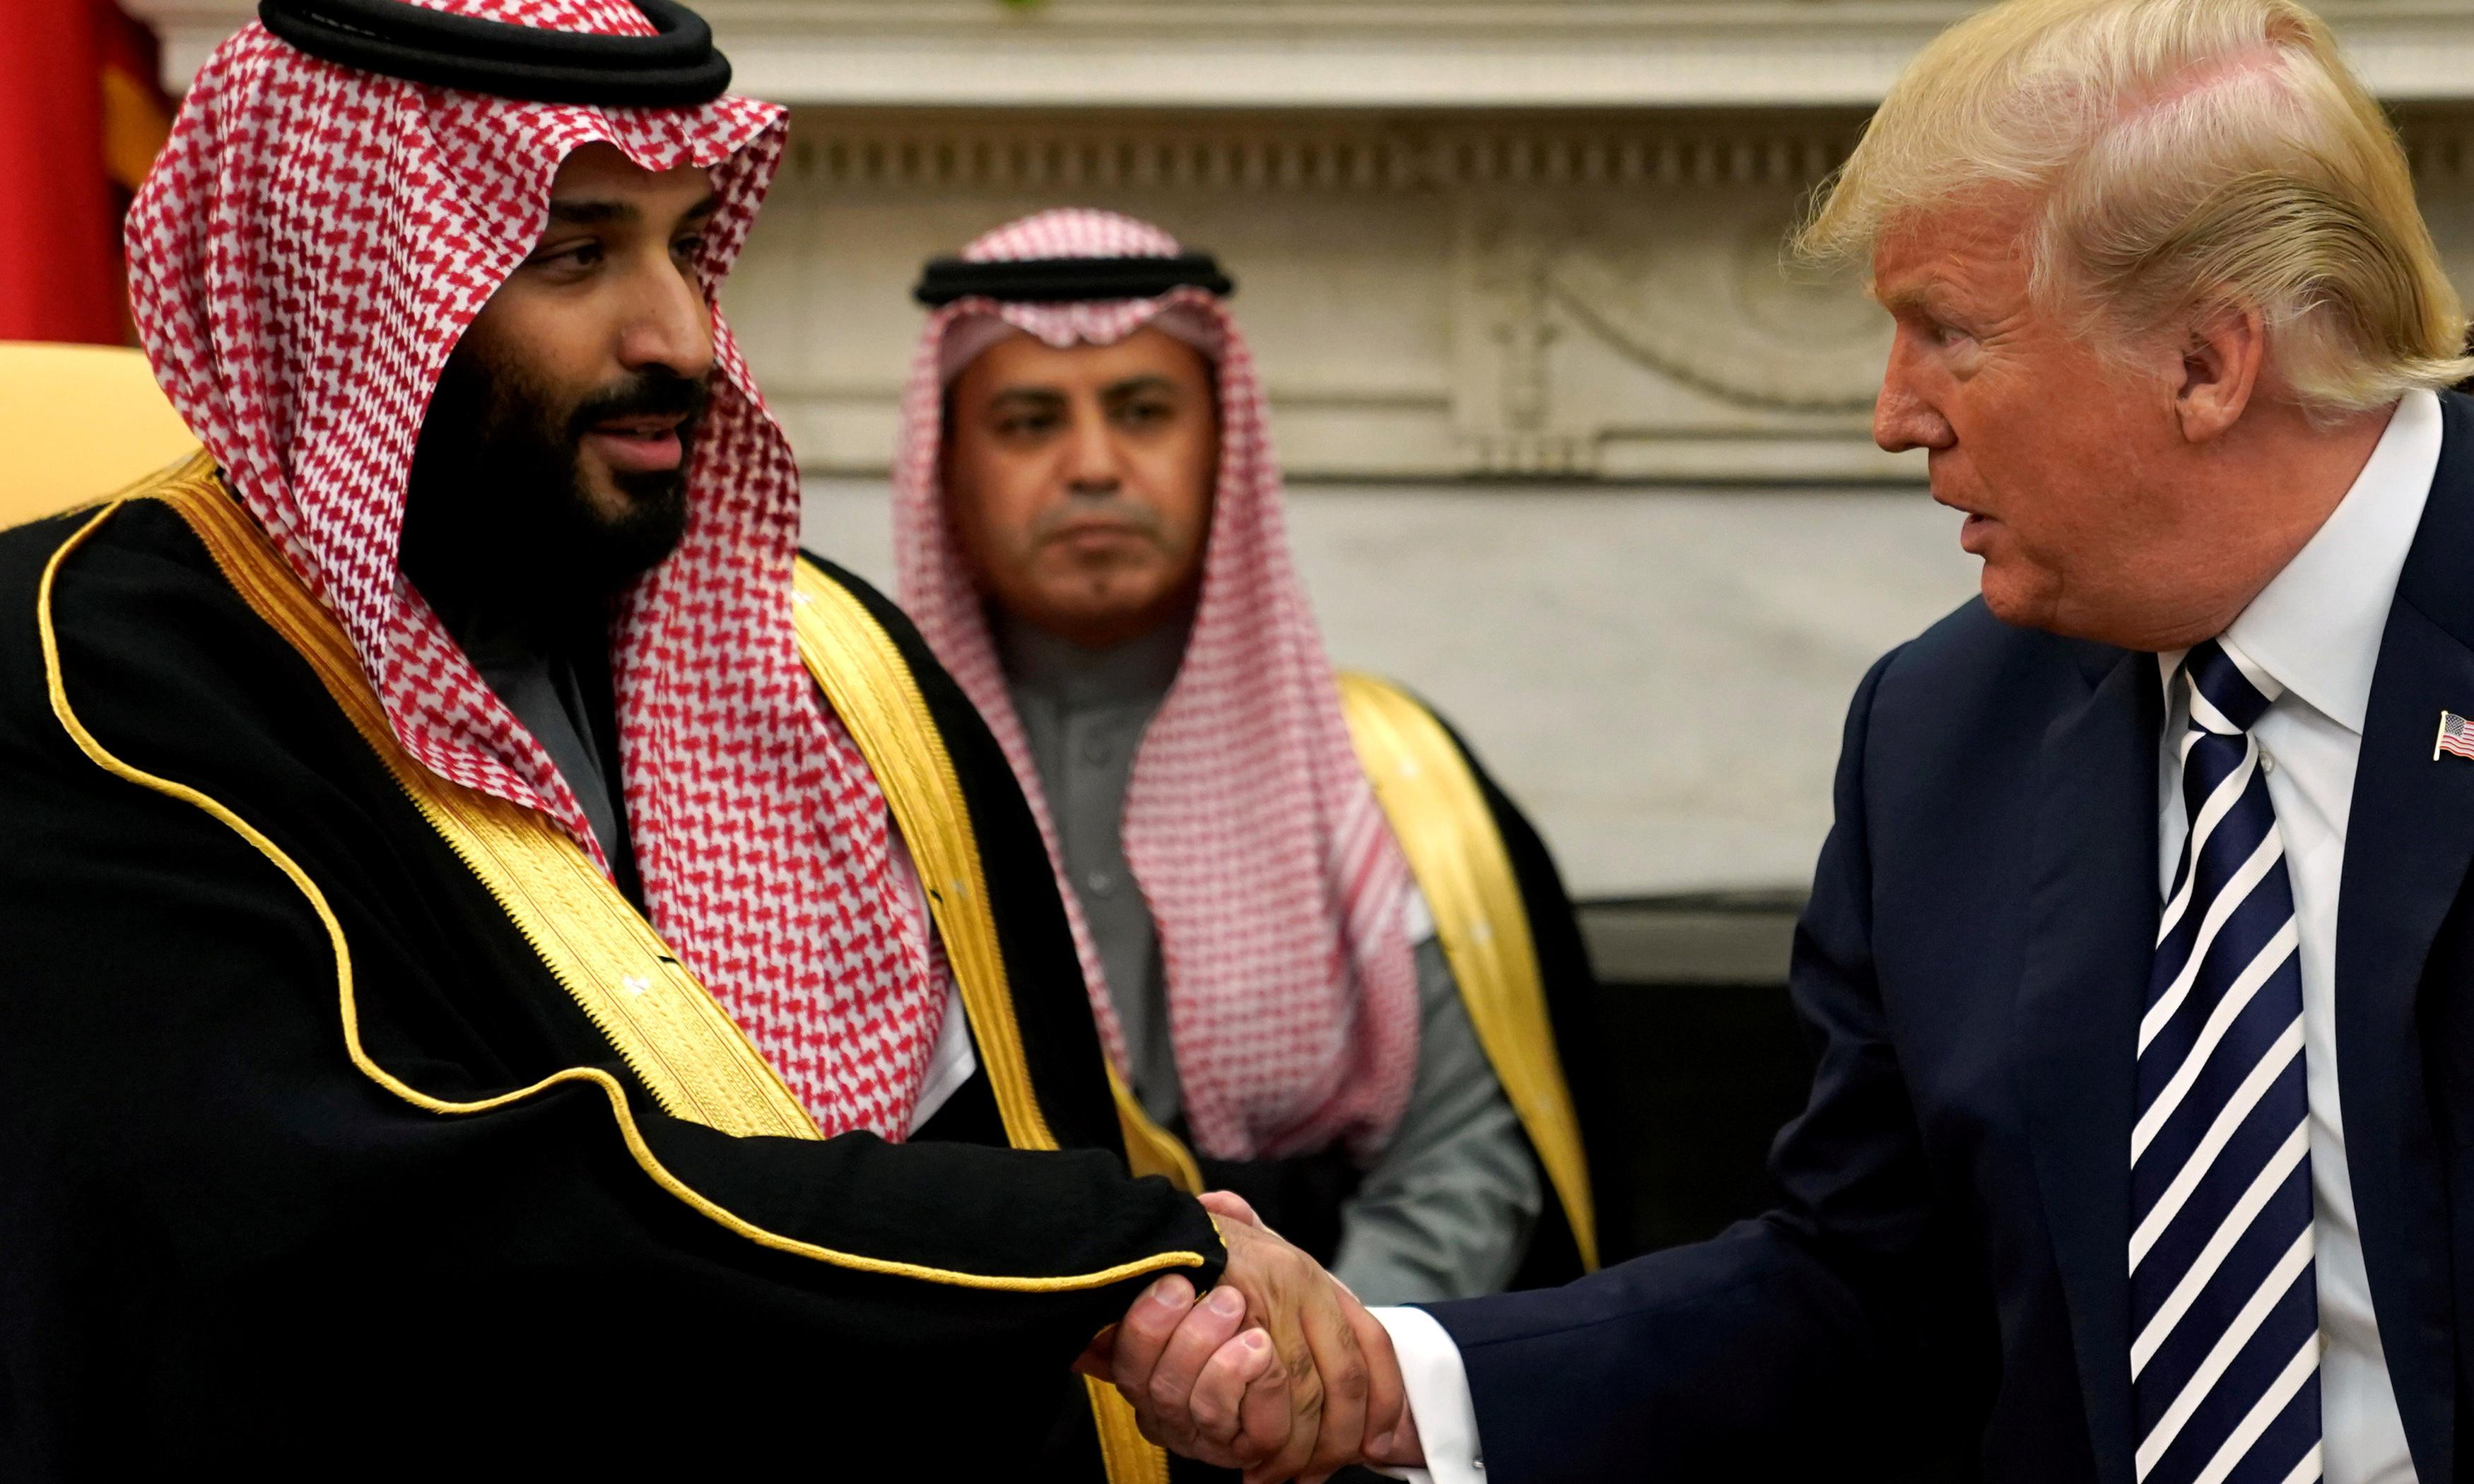 Trump's cronies are in secret talks to sell nuclear tech to Saudi. The risks are clear